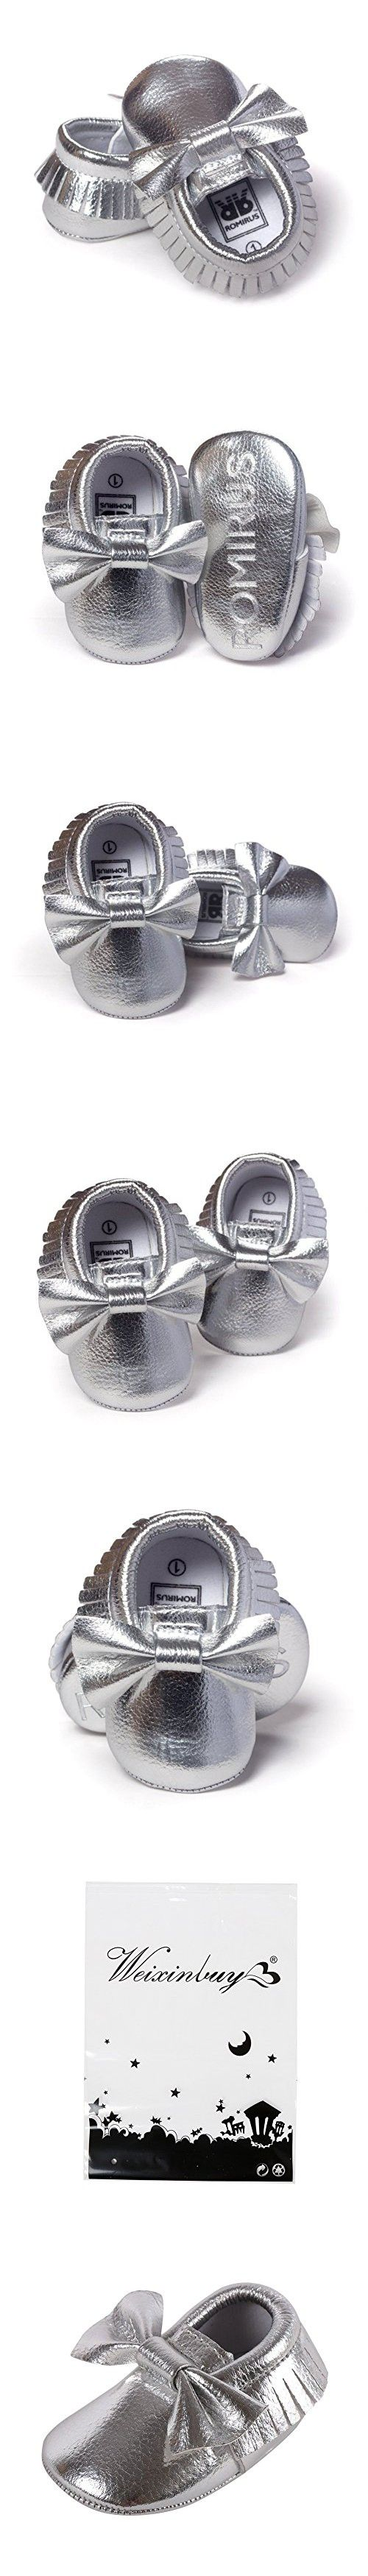 Weixinbuy Baby Boys Girls Soft Soled Tassel Bowknots Crib Shoes PU Moccasins (12-18 Months/5.32inch, #Q)